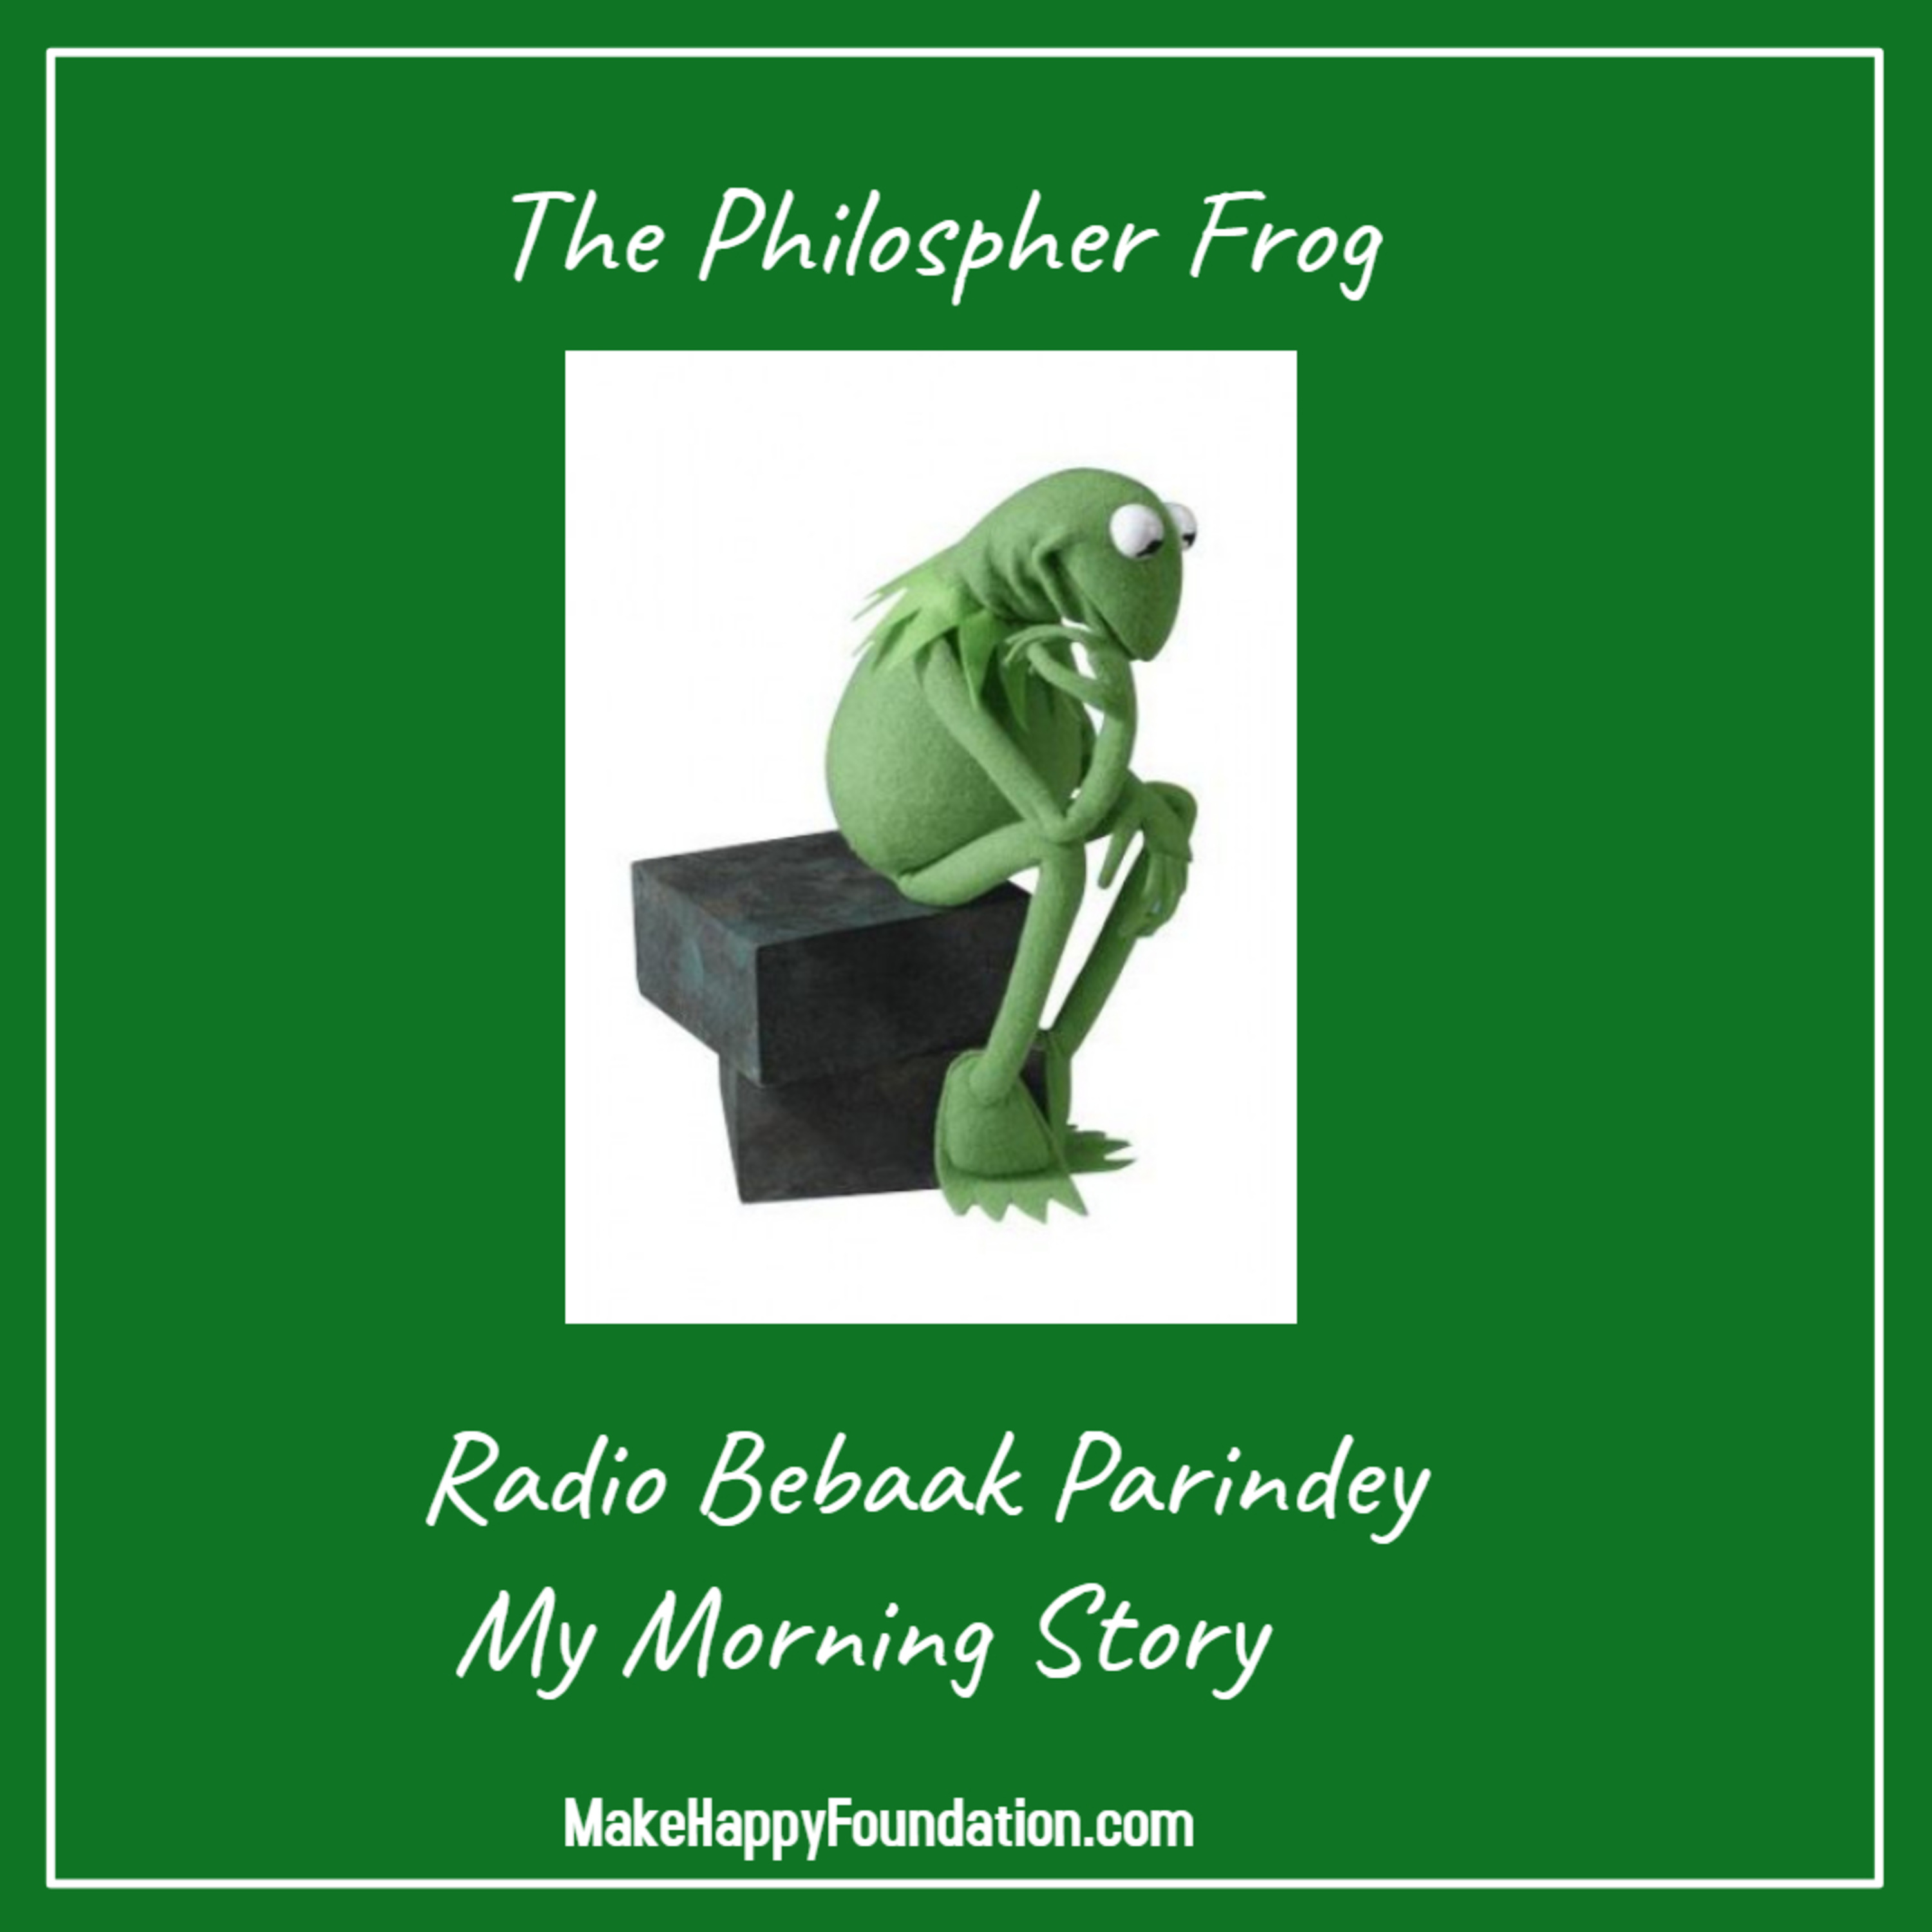 My Morning Story Program on Radio Bebaak Parindey . The Philospher Frog